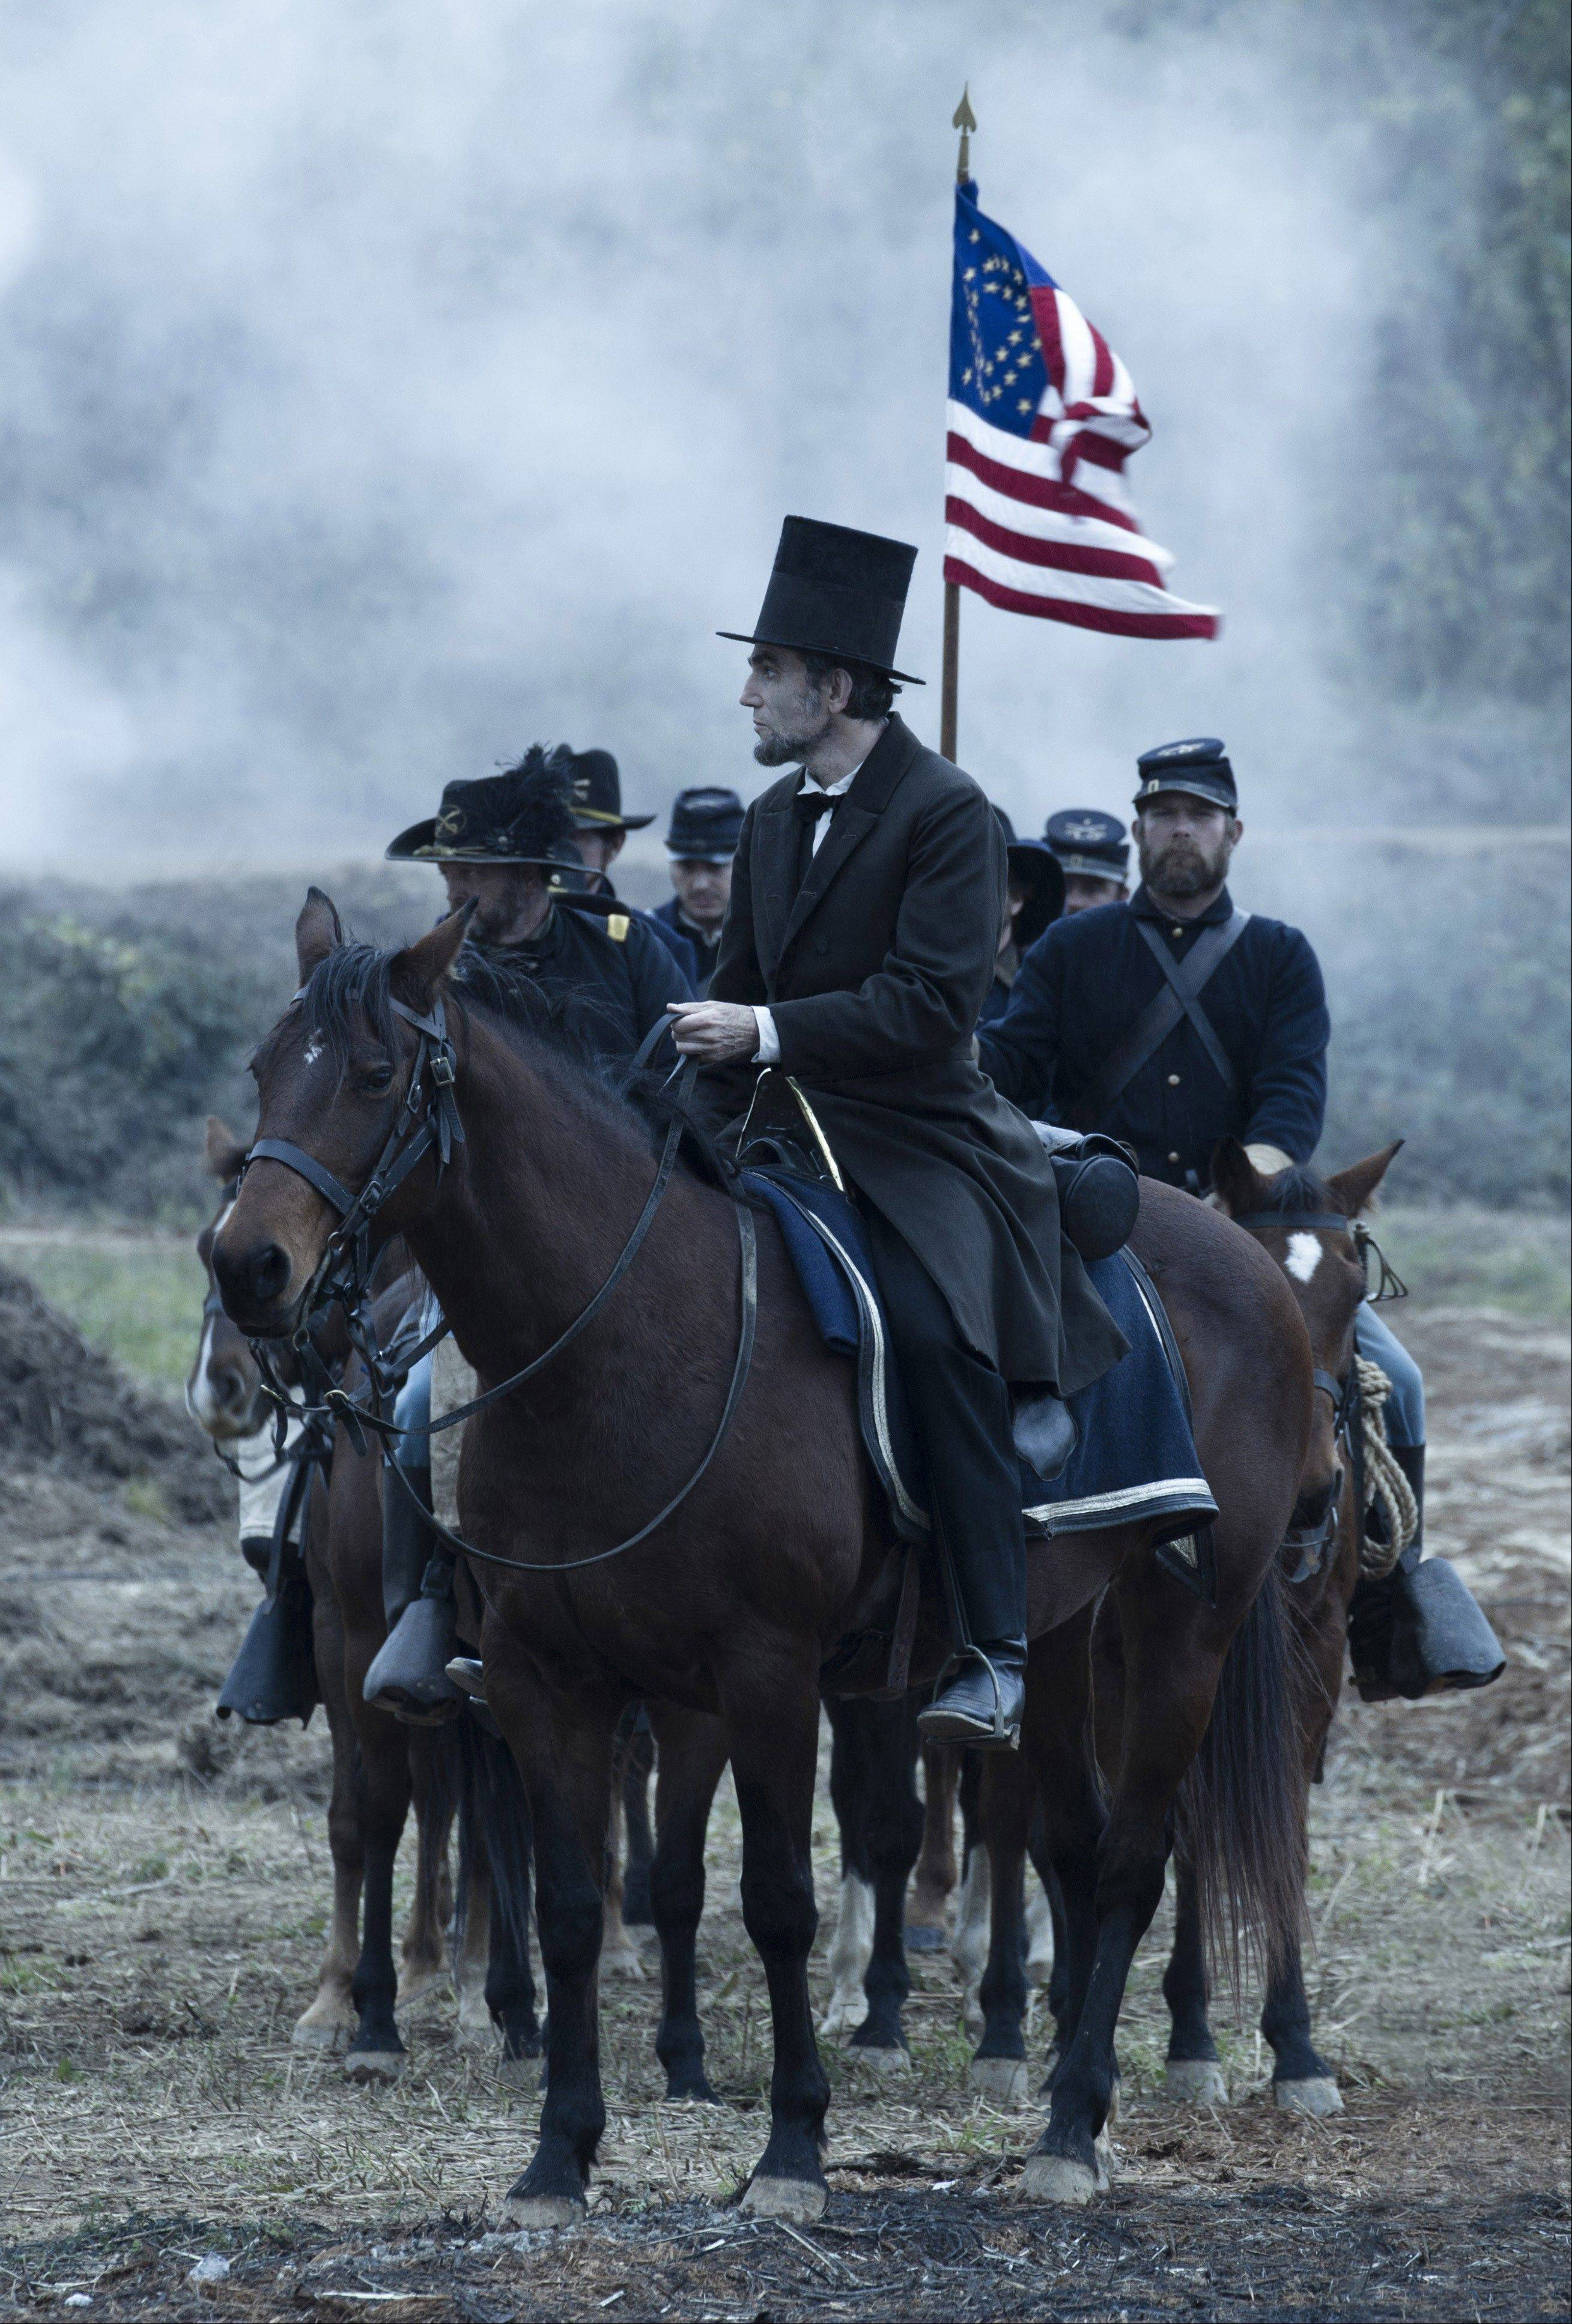 The U.S. President (Daniel Day-Lewis) surveys a Union vs. Confederacy battlefield in Steven Spielberg�s �Lincoln,� which leads the Academy Awards with 12 nominations.